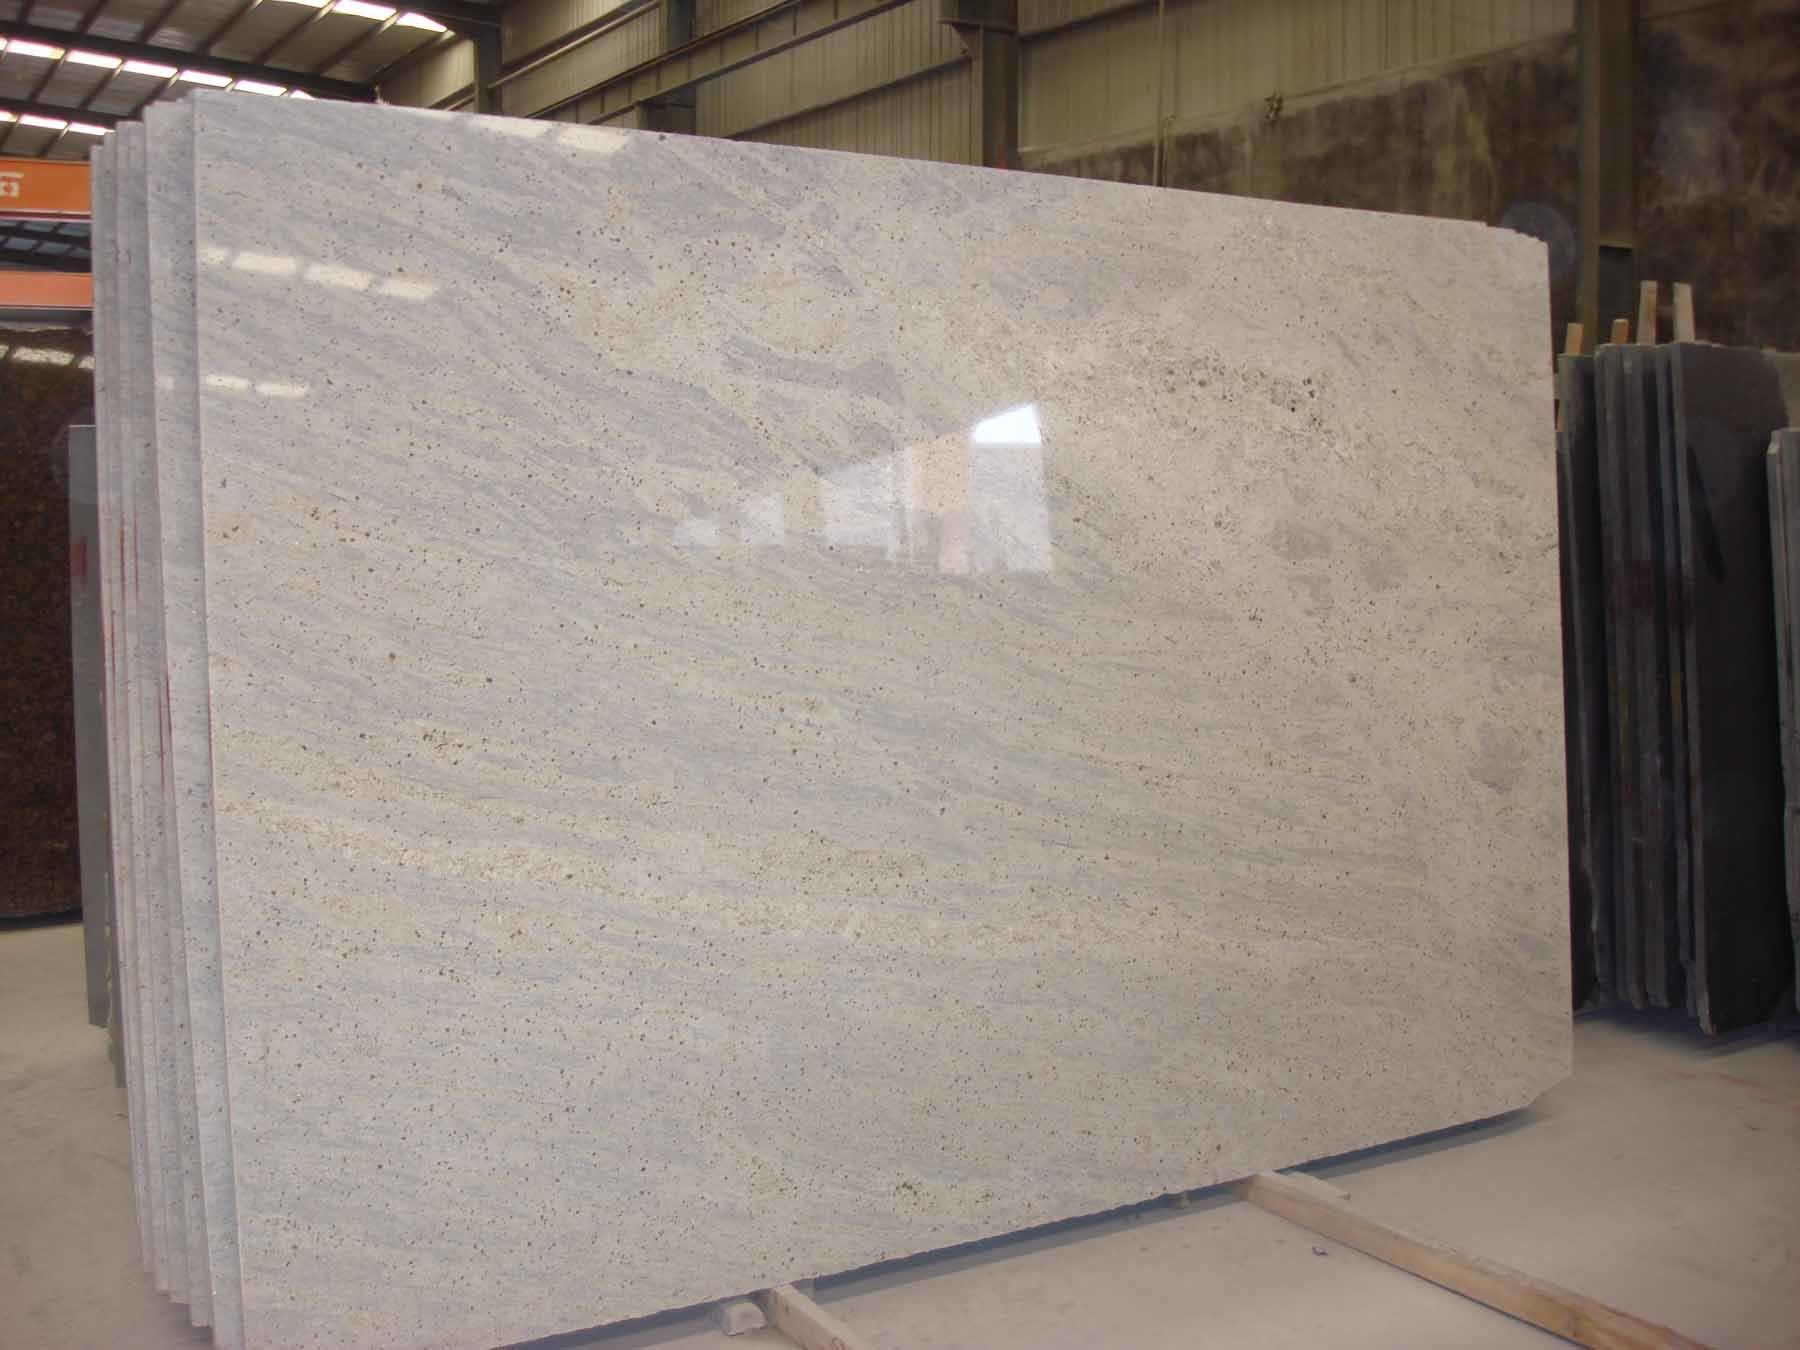 Kashmir White Granite : Kashmir White Granite Related Keywords & Suggestions - Kashmir White ...